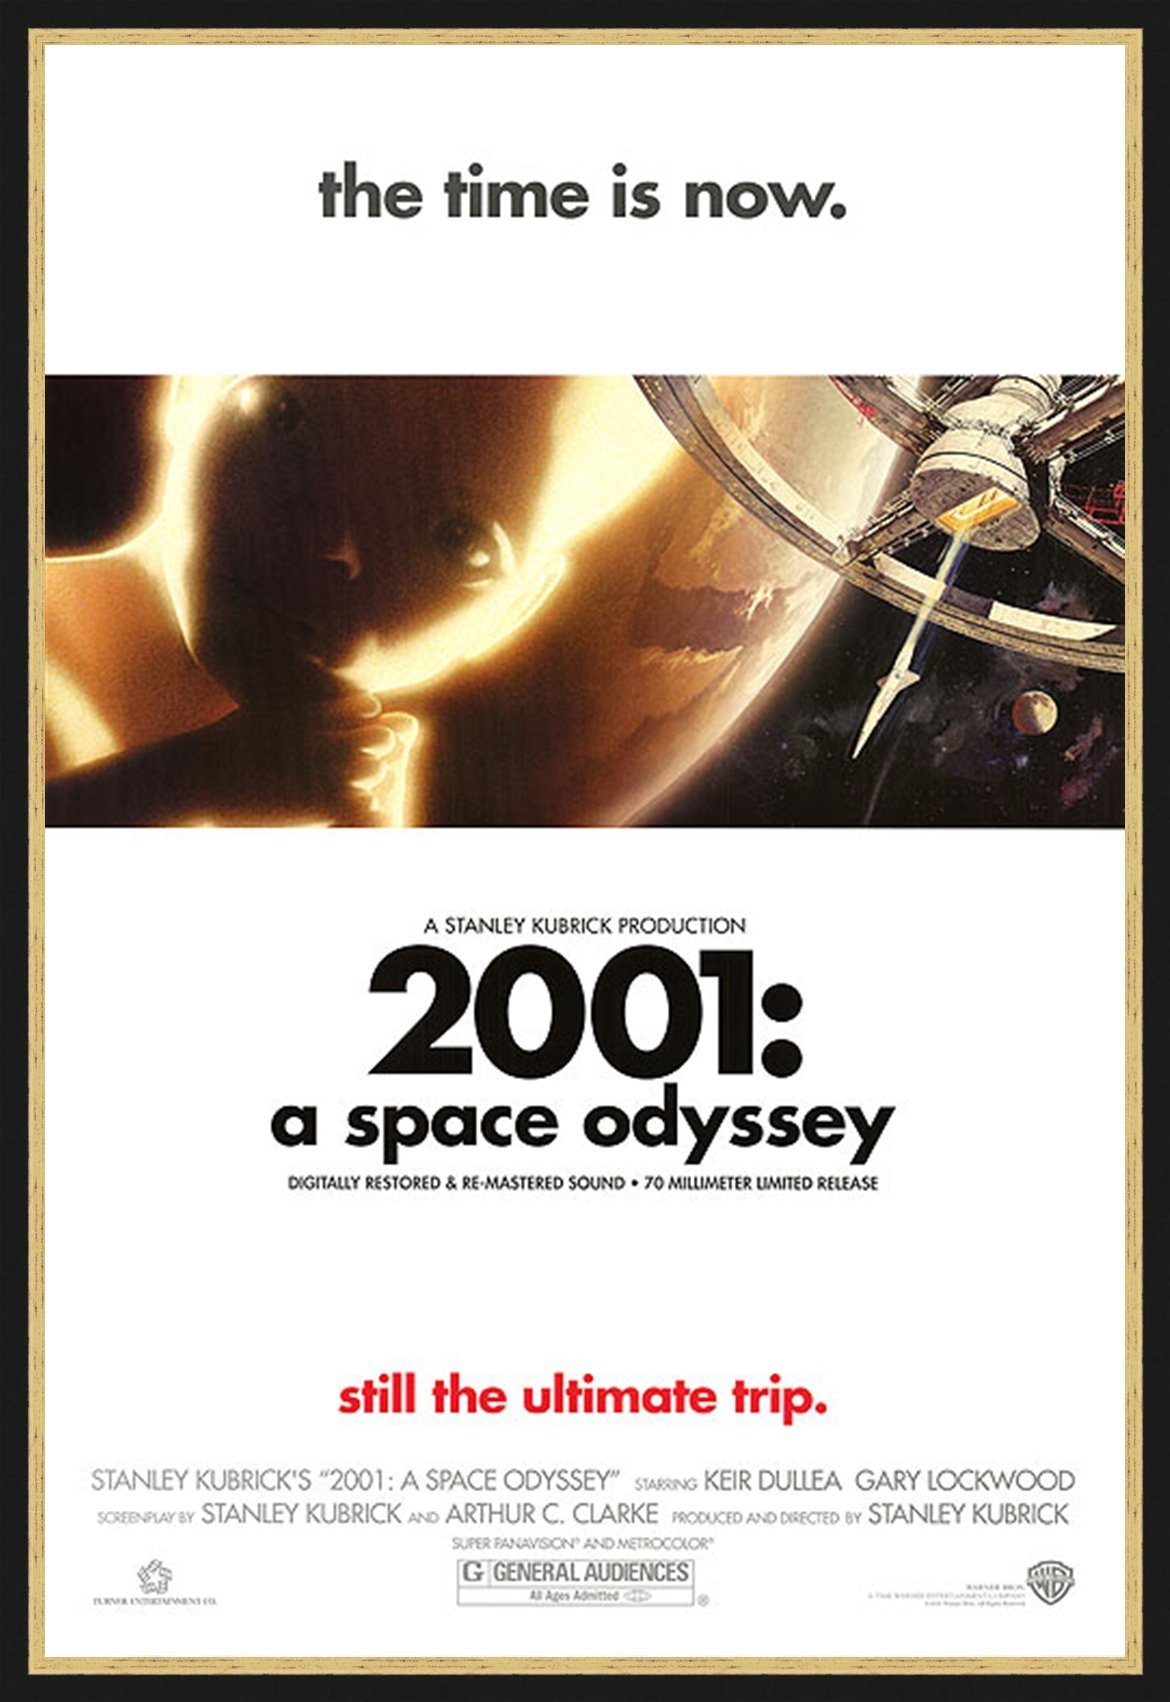 An original movie poster for the Stanley Kubrick film 2001 A Space Odyssey